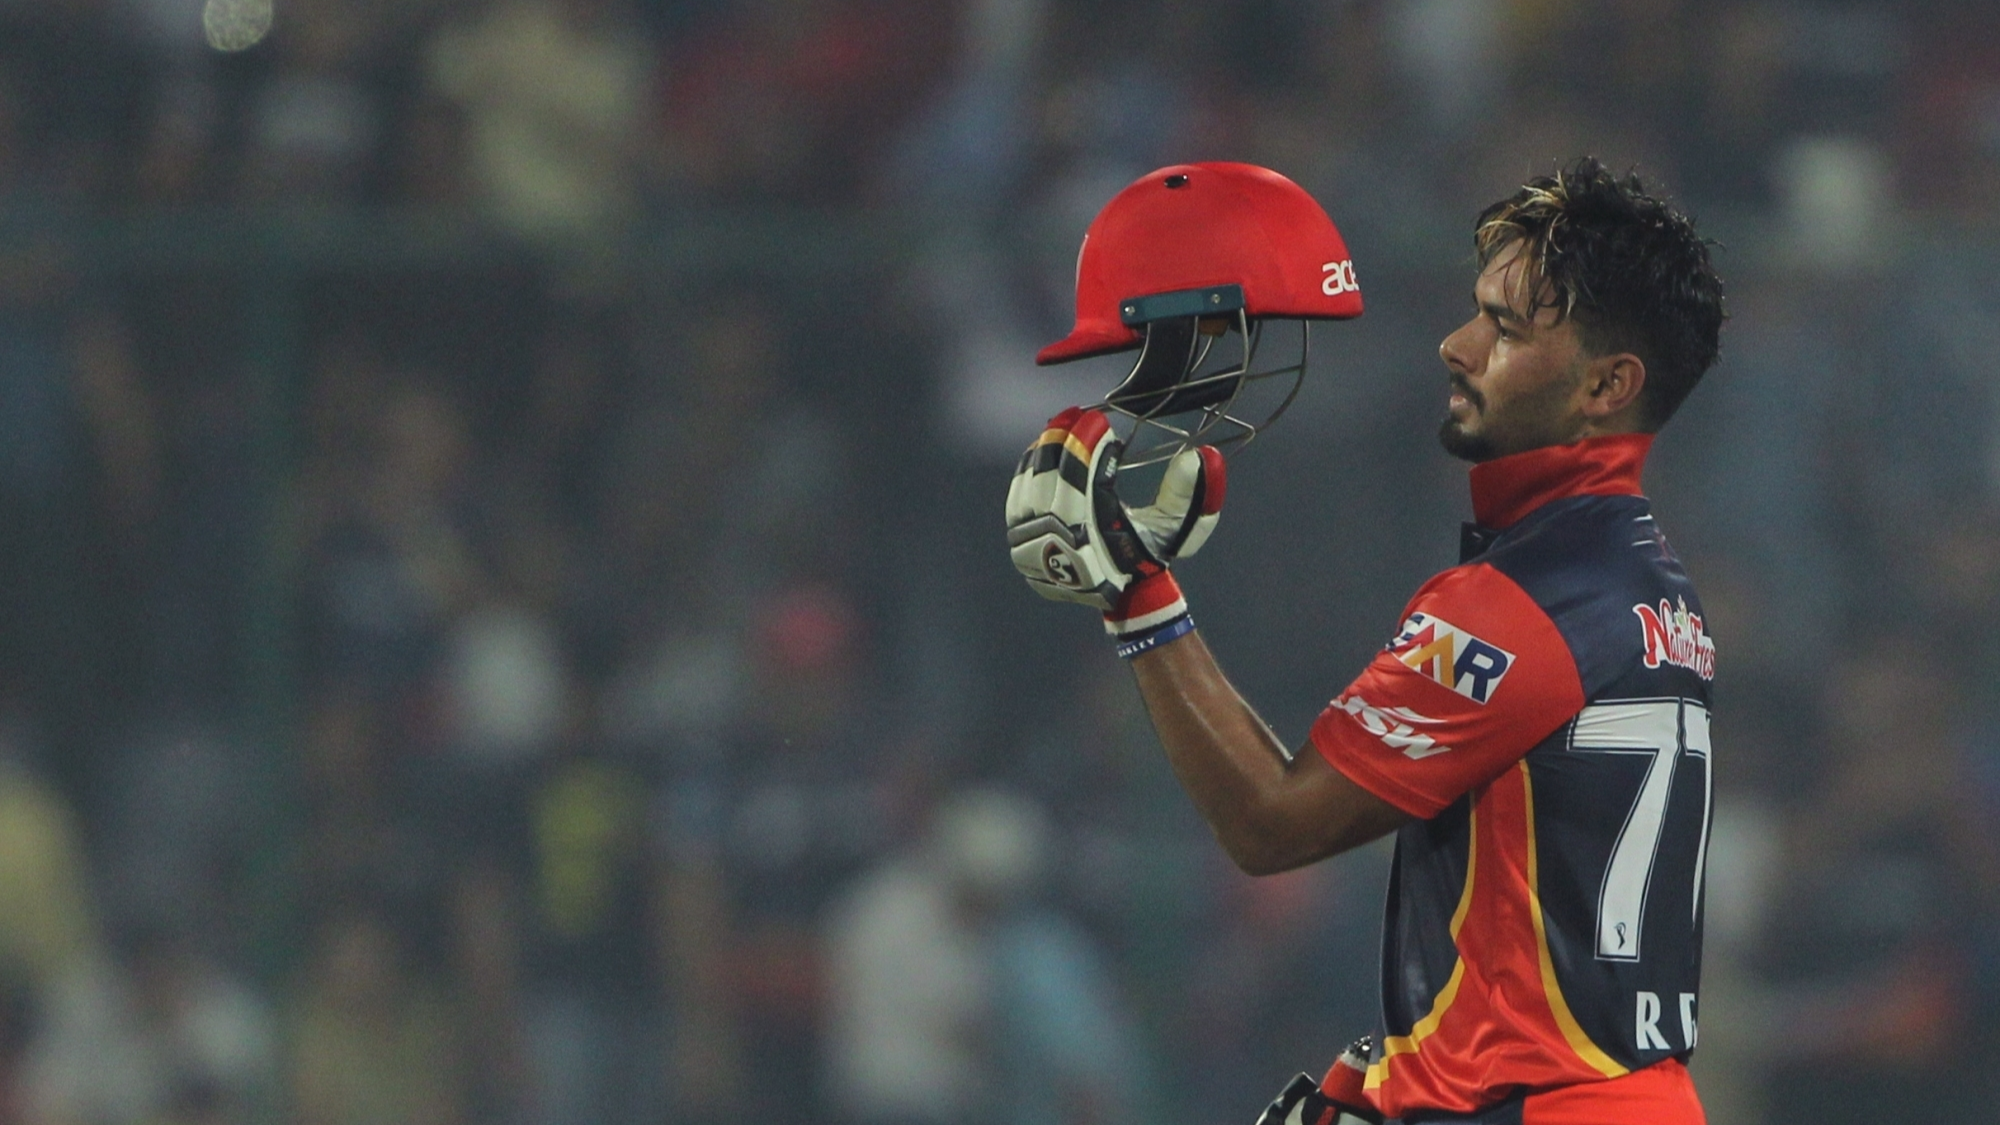 IPL 2018: Rishabh Pant reveals what motivated him to hit the SRH bowlers in Delhi